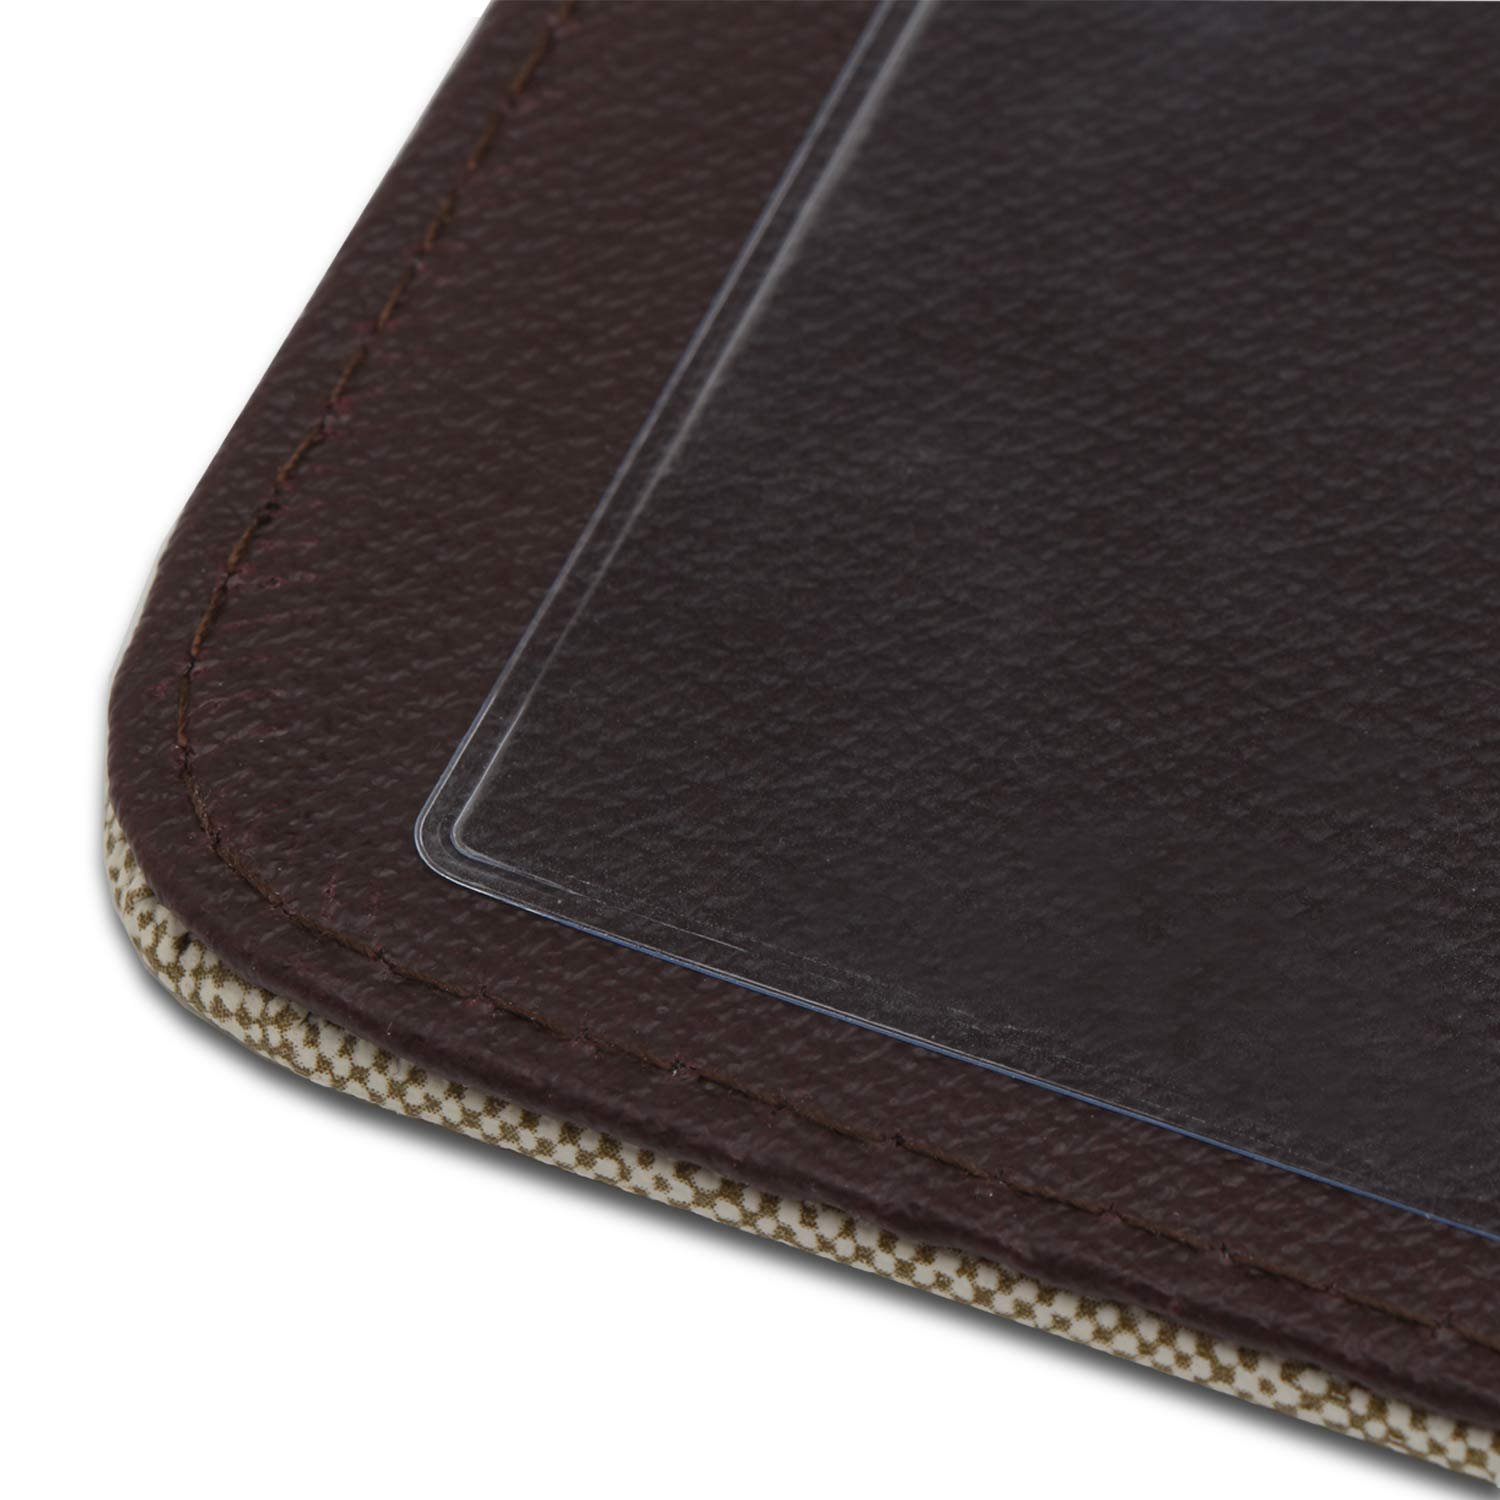 4 Pack Segarty Leather Menu Holders with 8 Insert Pages Menu Covers Table Menu Cover for Restaurants Bistros Diners Drinks and Cafeterias Double Views Cafes 8.5x12 Inch